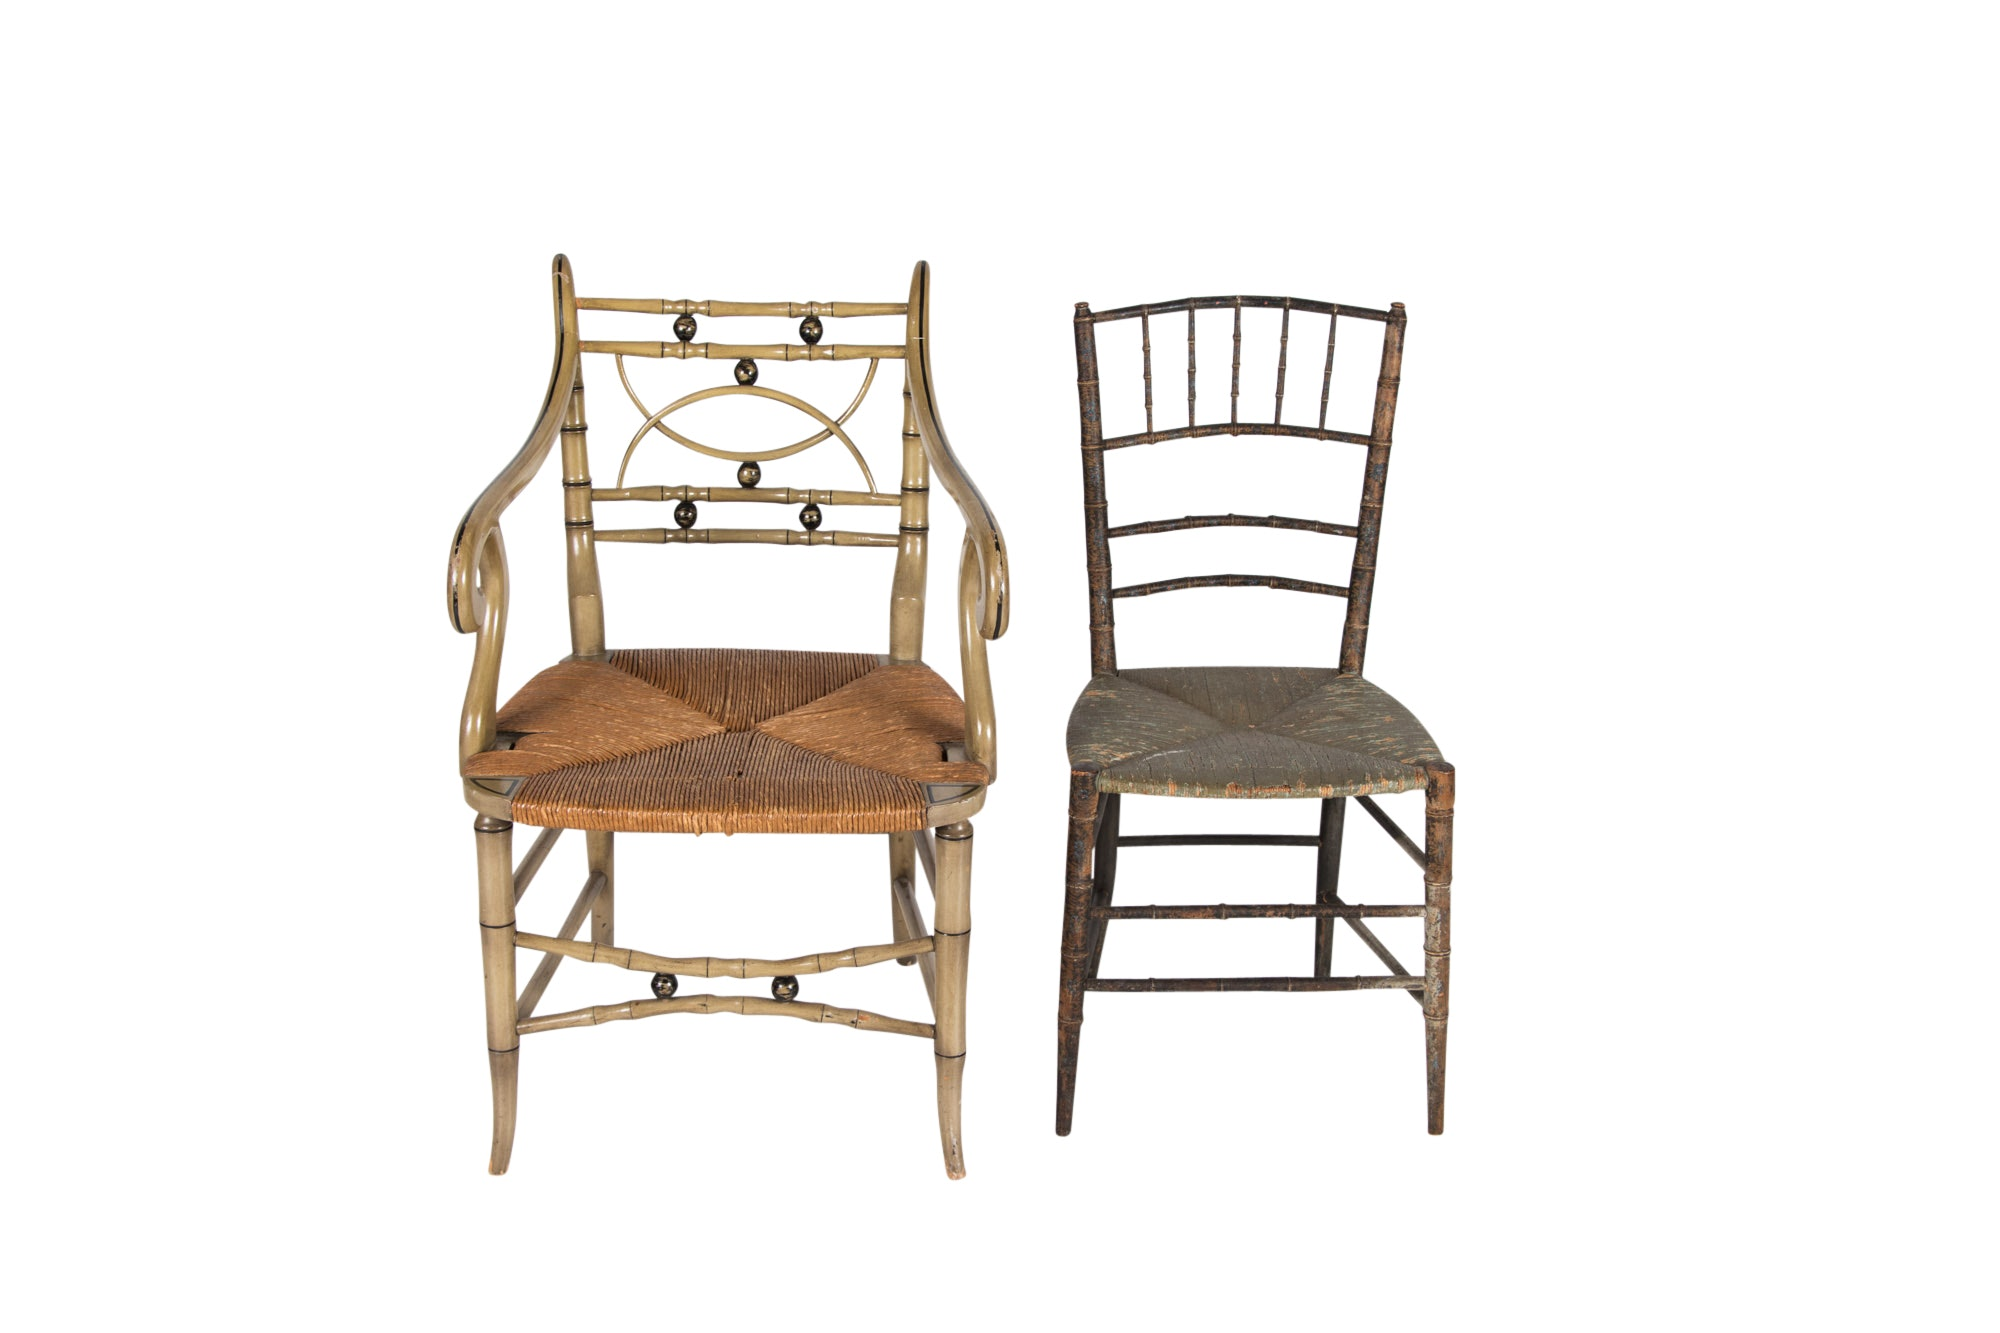 Victorian Chinoiserie Side Chair, Circa 1880, and Vintage Regency Style Armchair